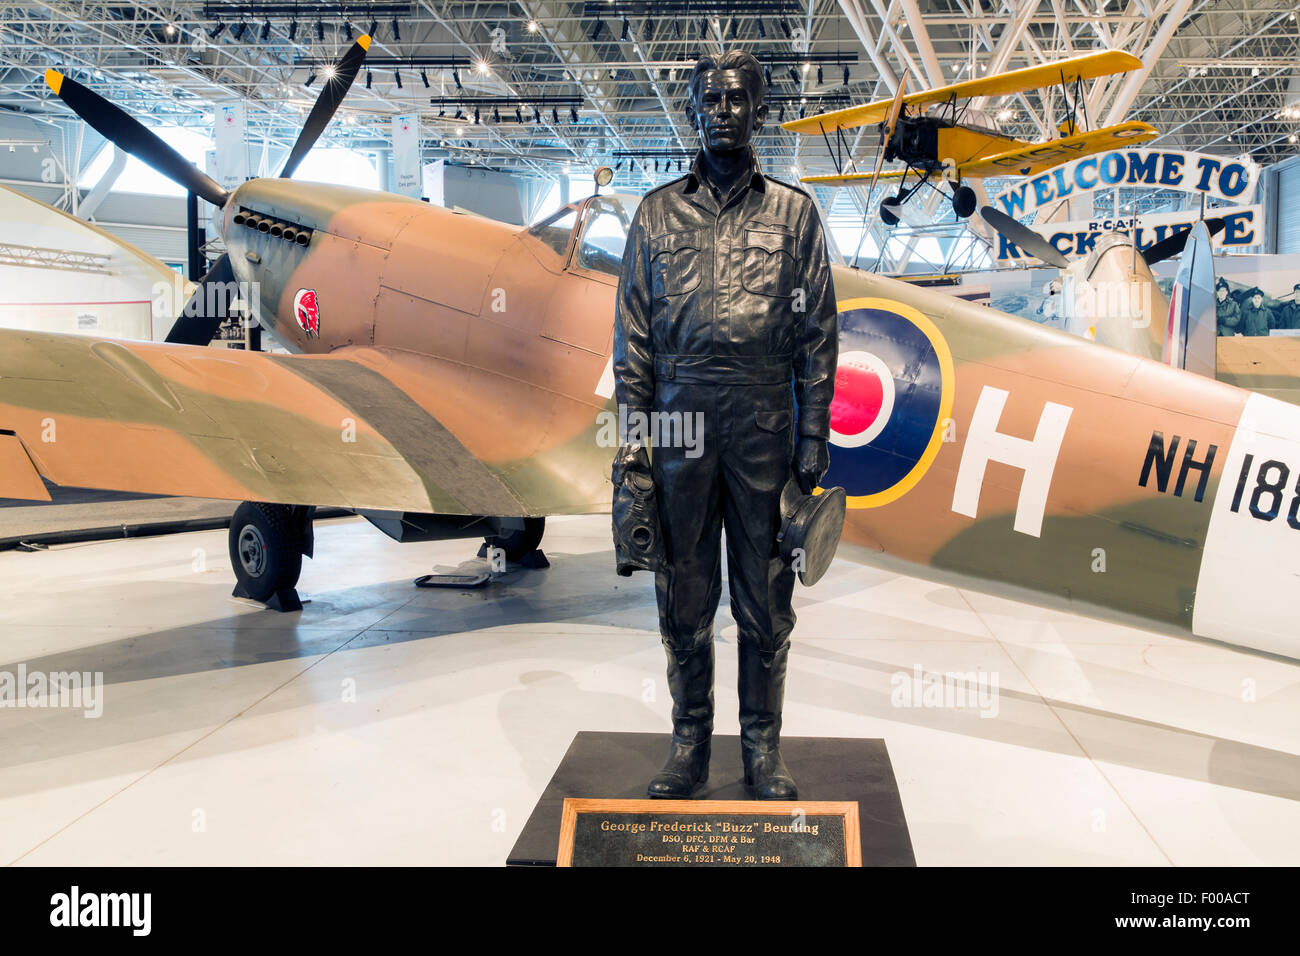 Canada,Ontario,Ottawa, Canada Aviation & Space Museum, statue of George Frederick 'Buzz' Beurling, Canadian - Stock Image